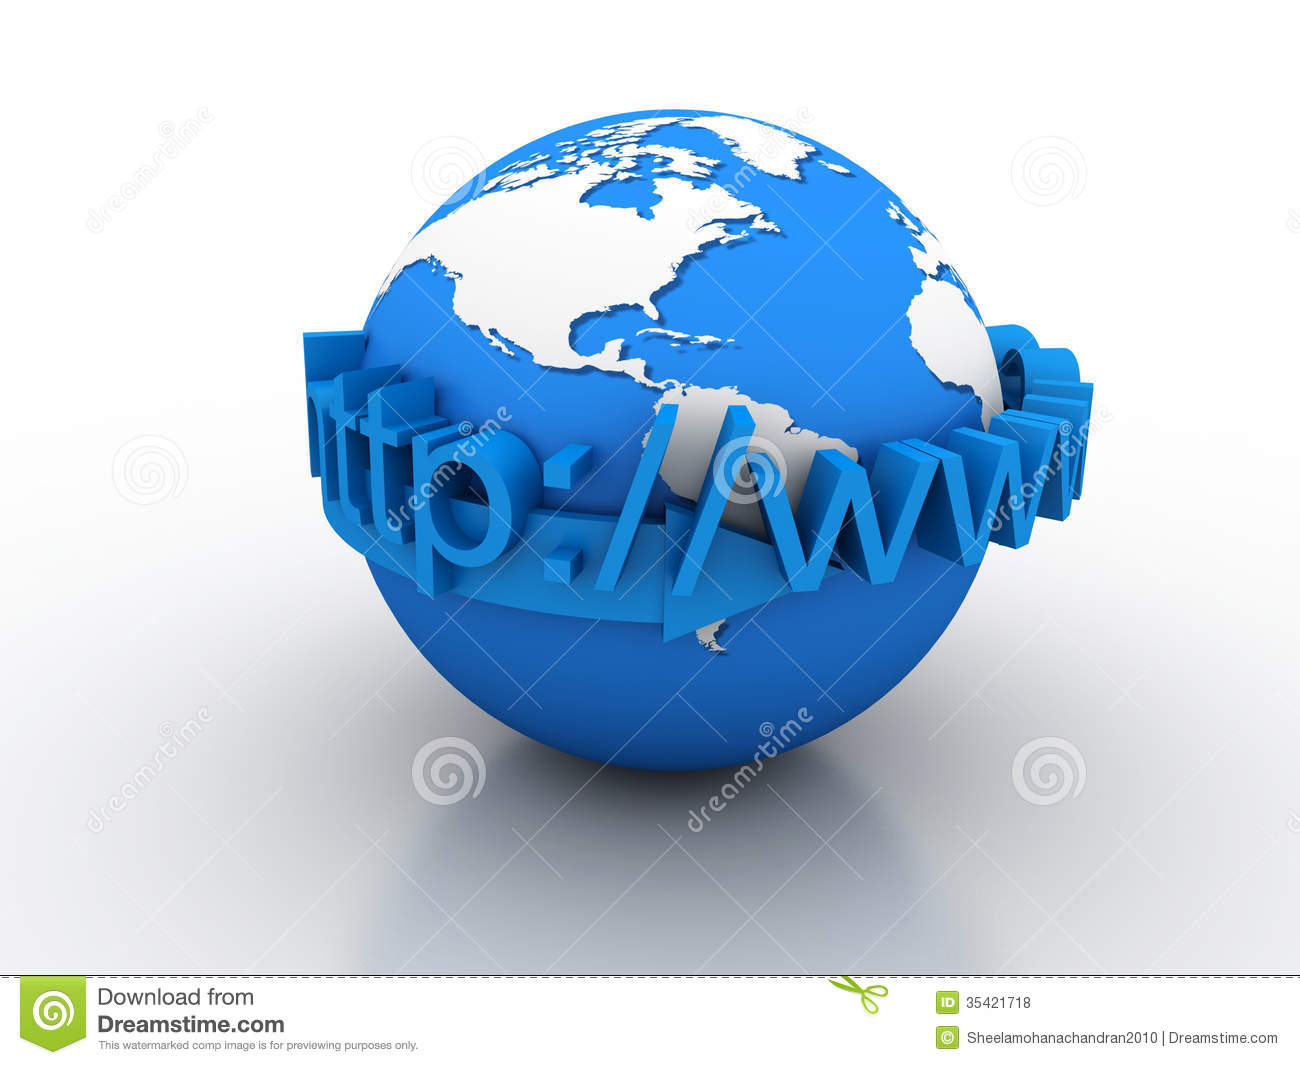 Http Dreamstime Com Royalty Free Stock Photos Internet World Wide Web Concept D Image35421718